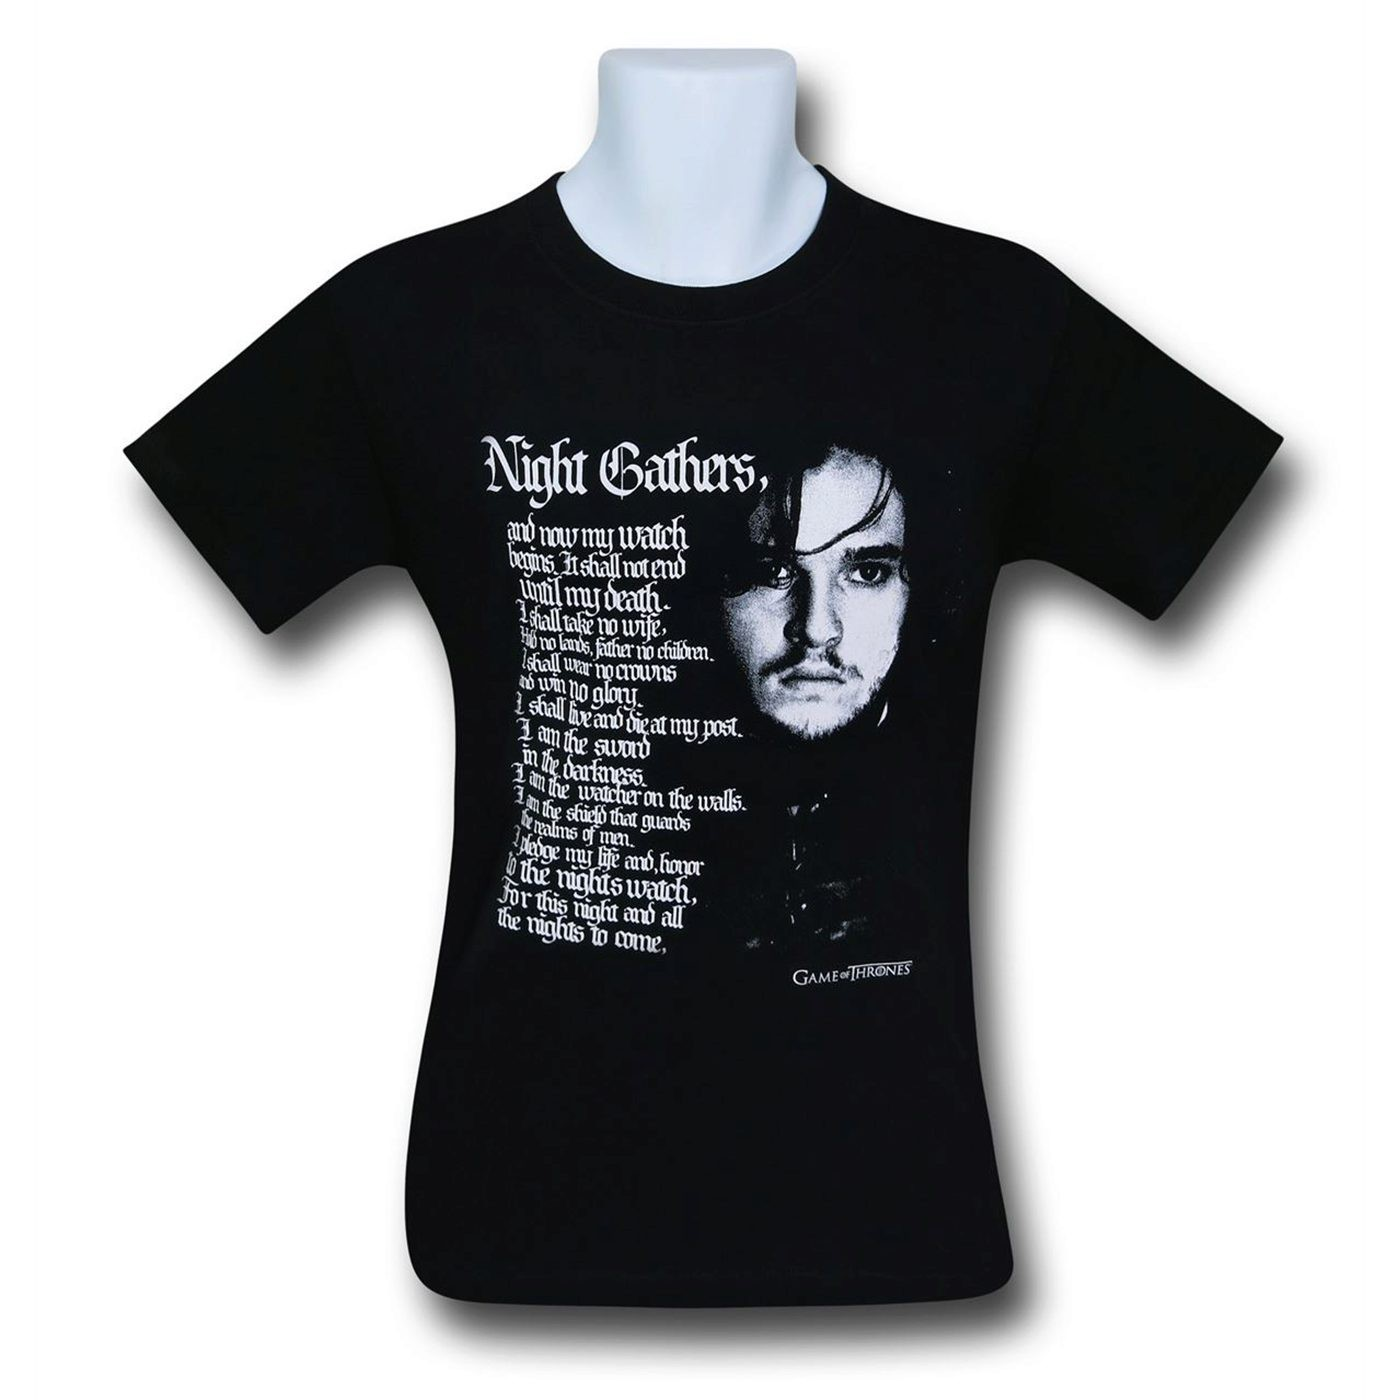 Game of Thrones Night Gathers T-Shirt